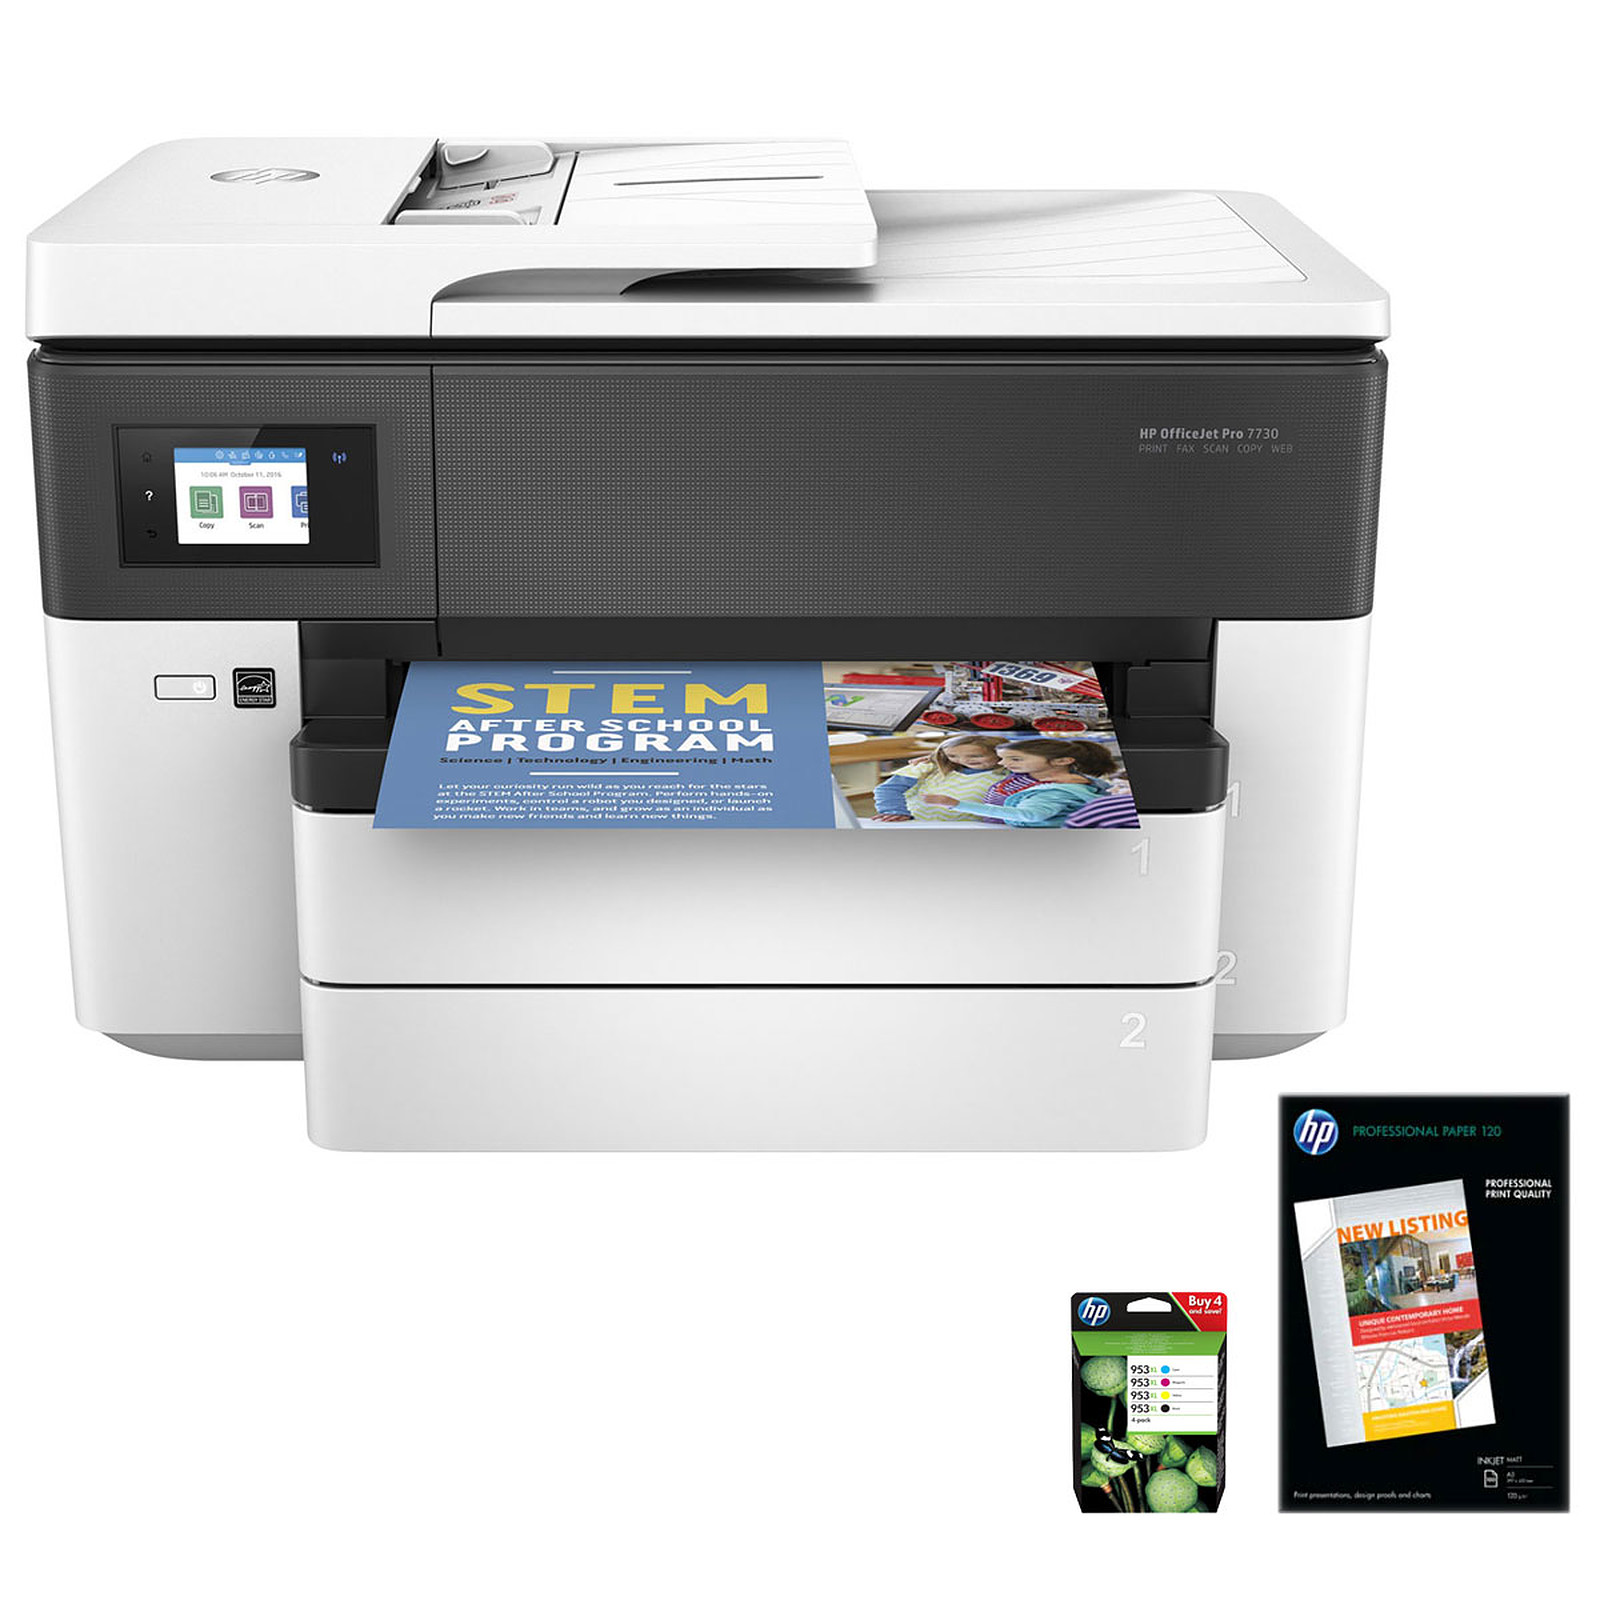 HP OfficeJet Pro 7730 + Papier mat + Pack 4 cartouches